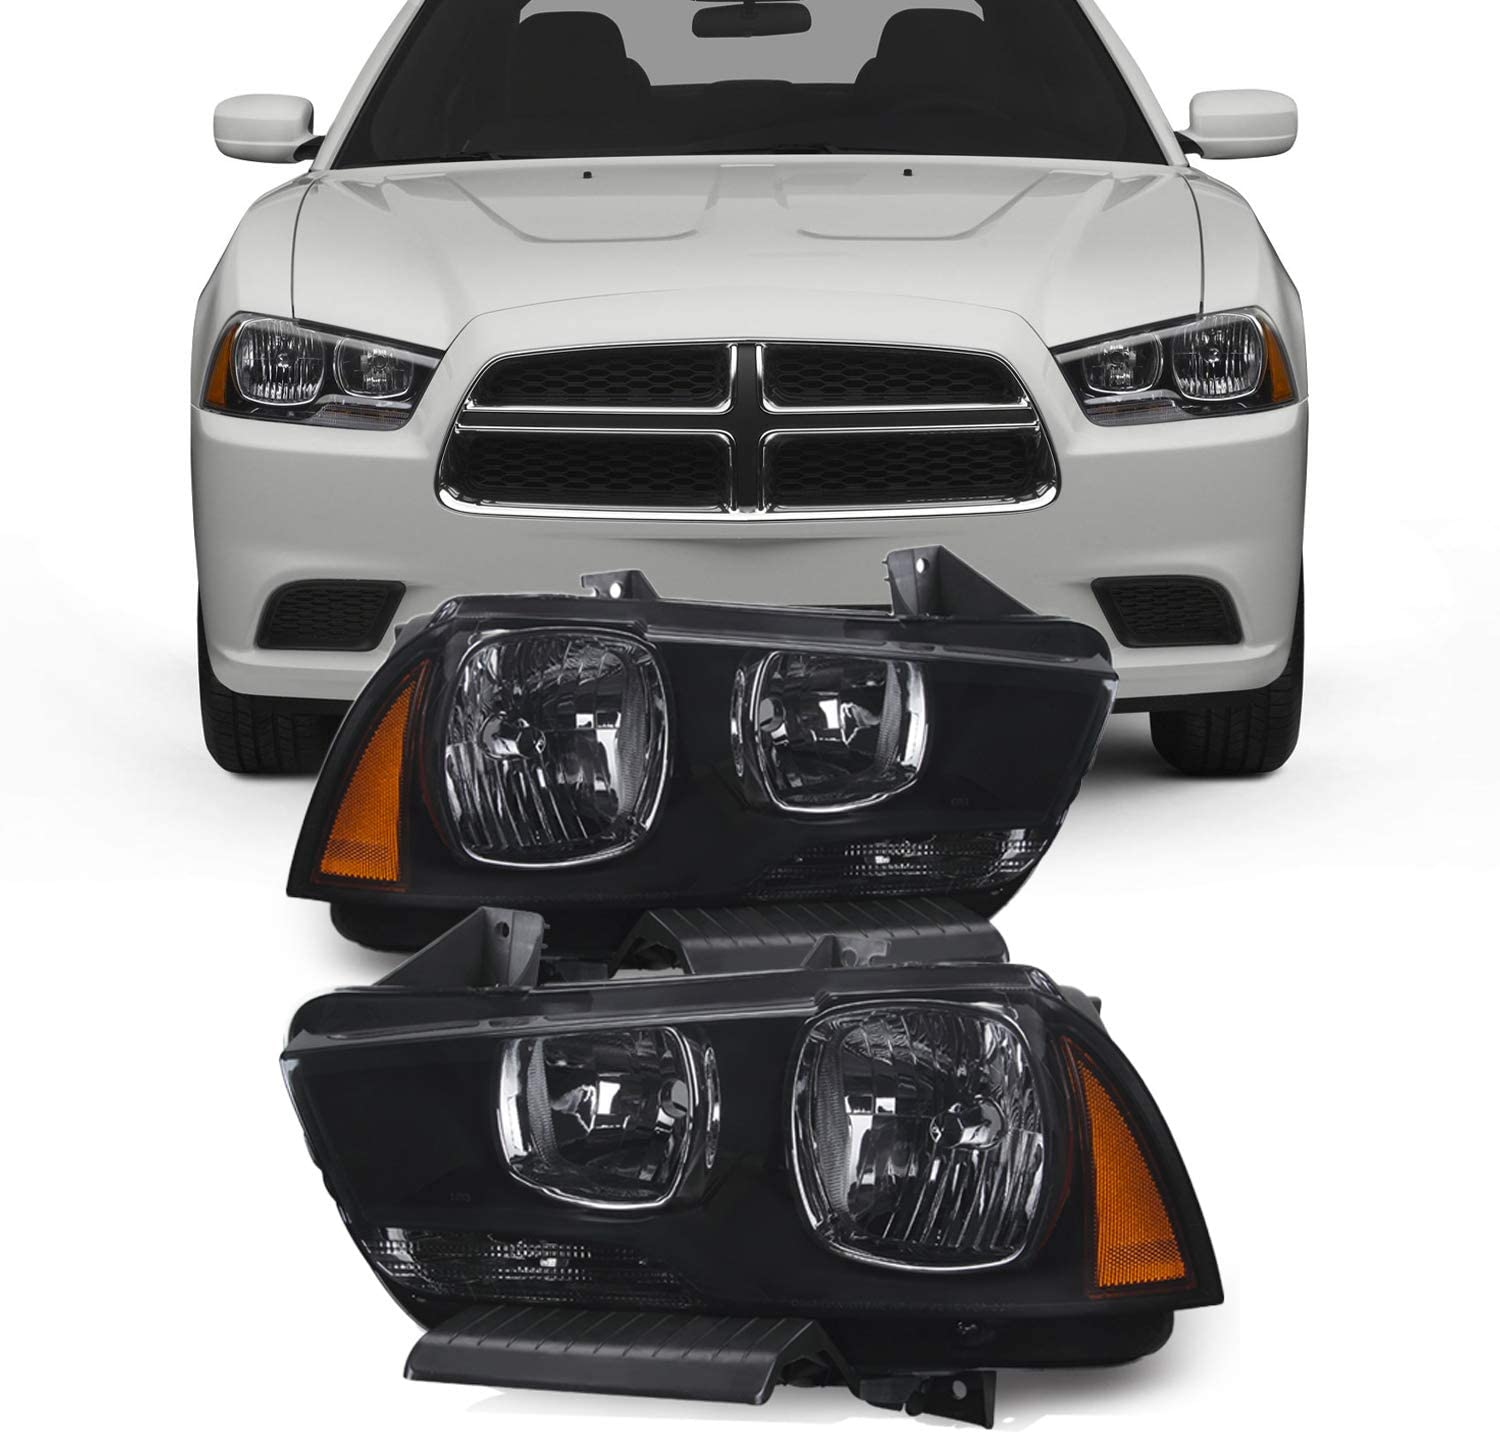 For Black Smoke 11-14 Dodge Charger Headlights Front Lamps Direct Replacement Pair Left + Right